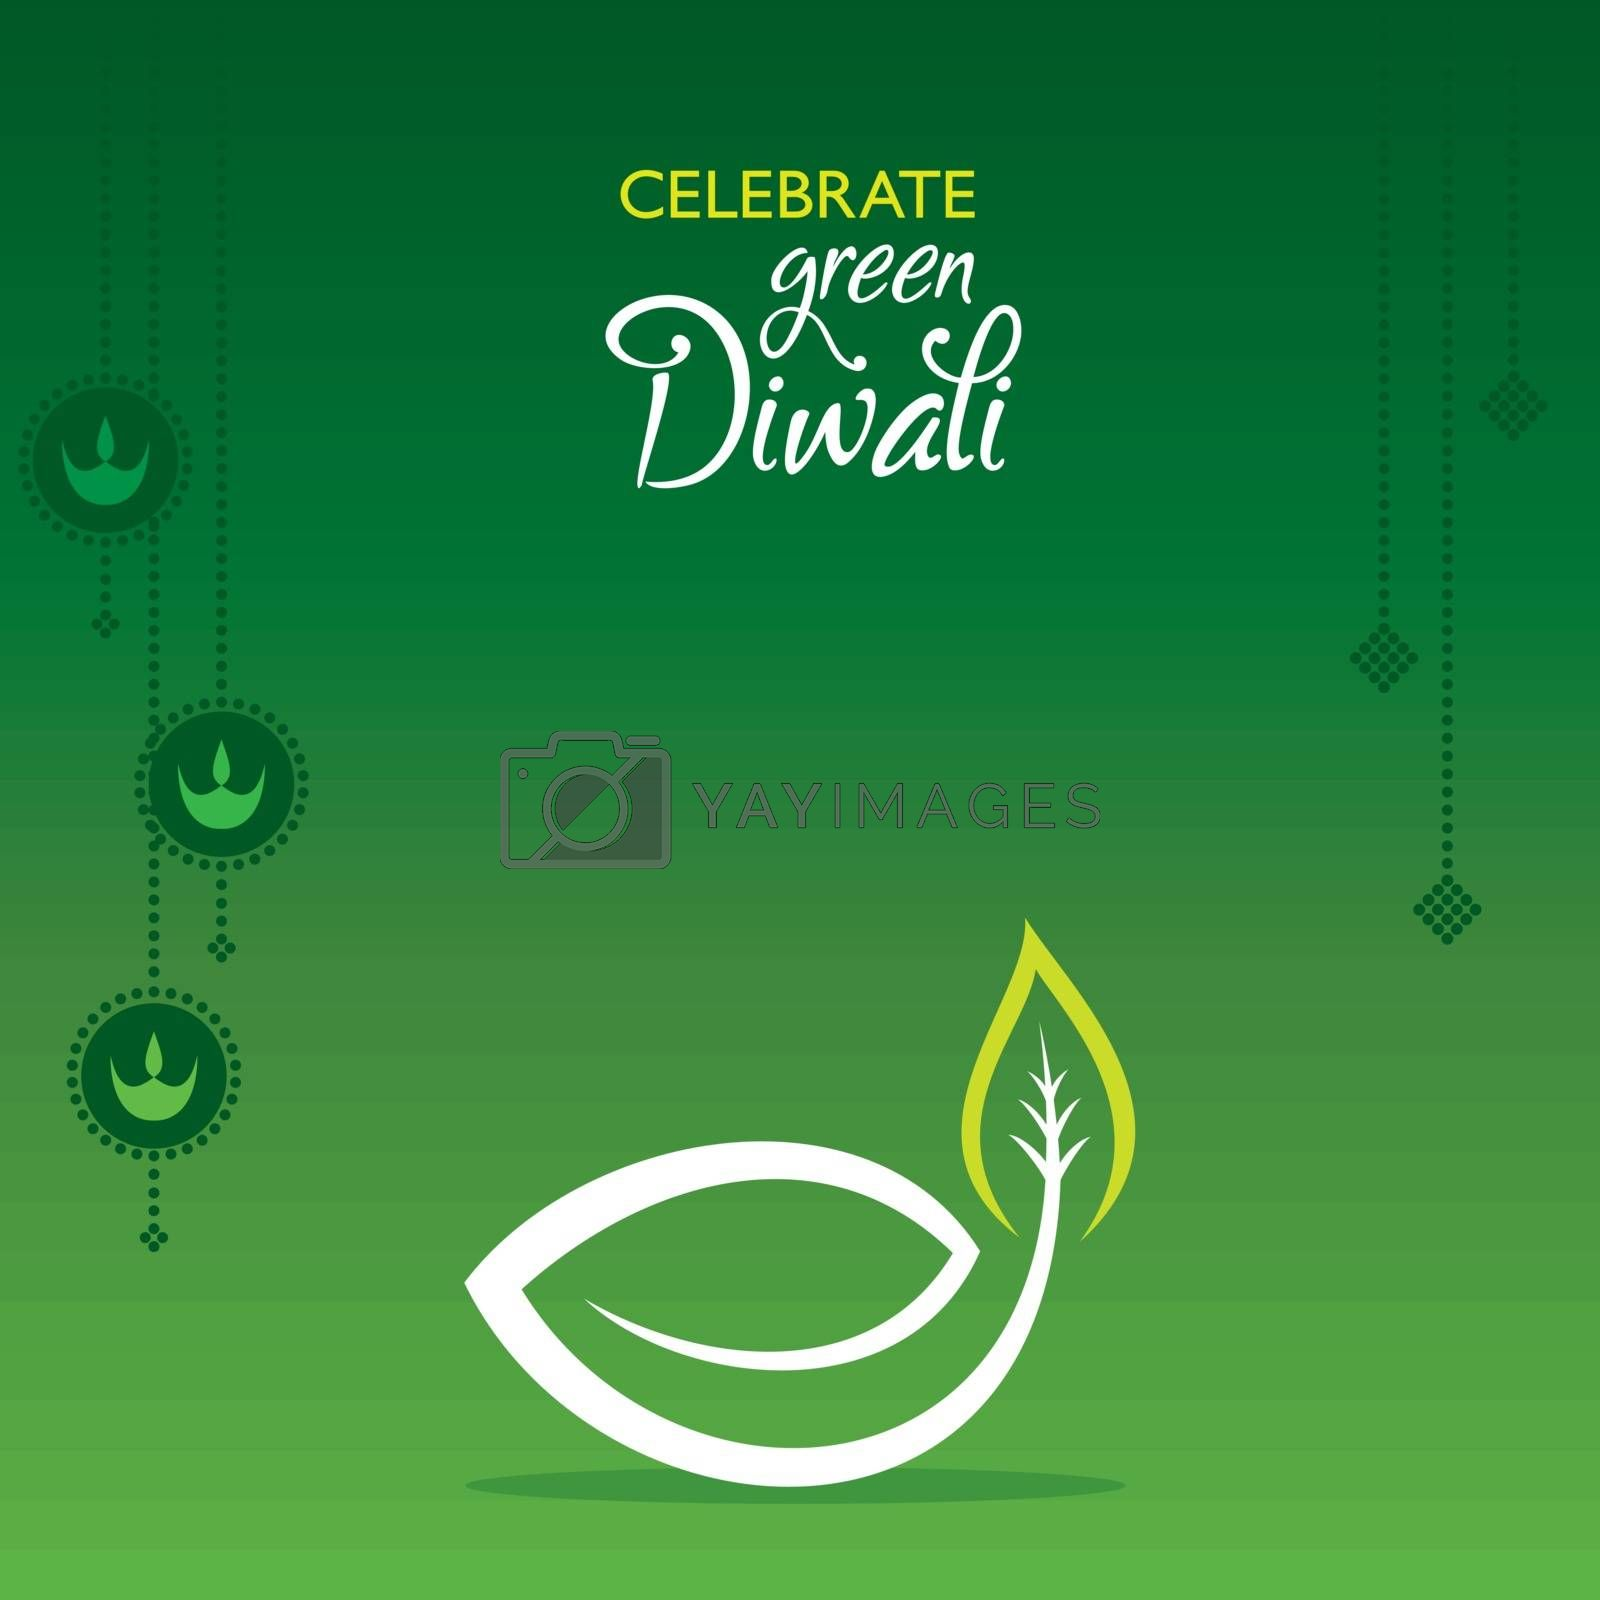 illustration of Greeting for celebrate green diwali concept